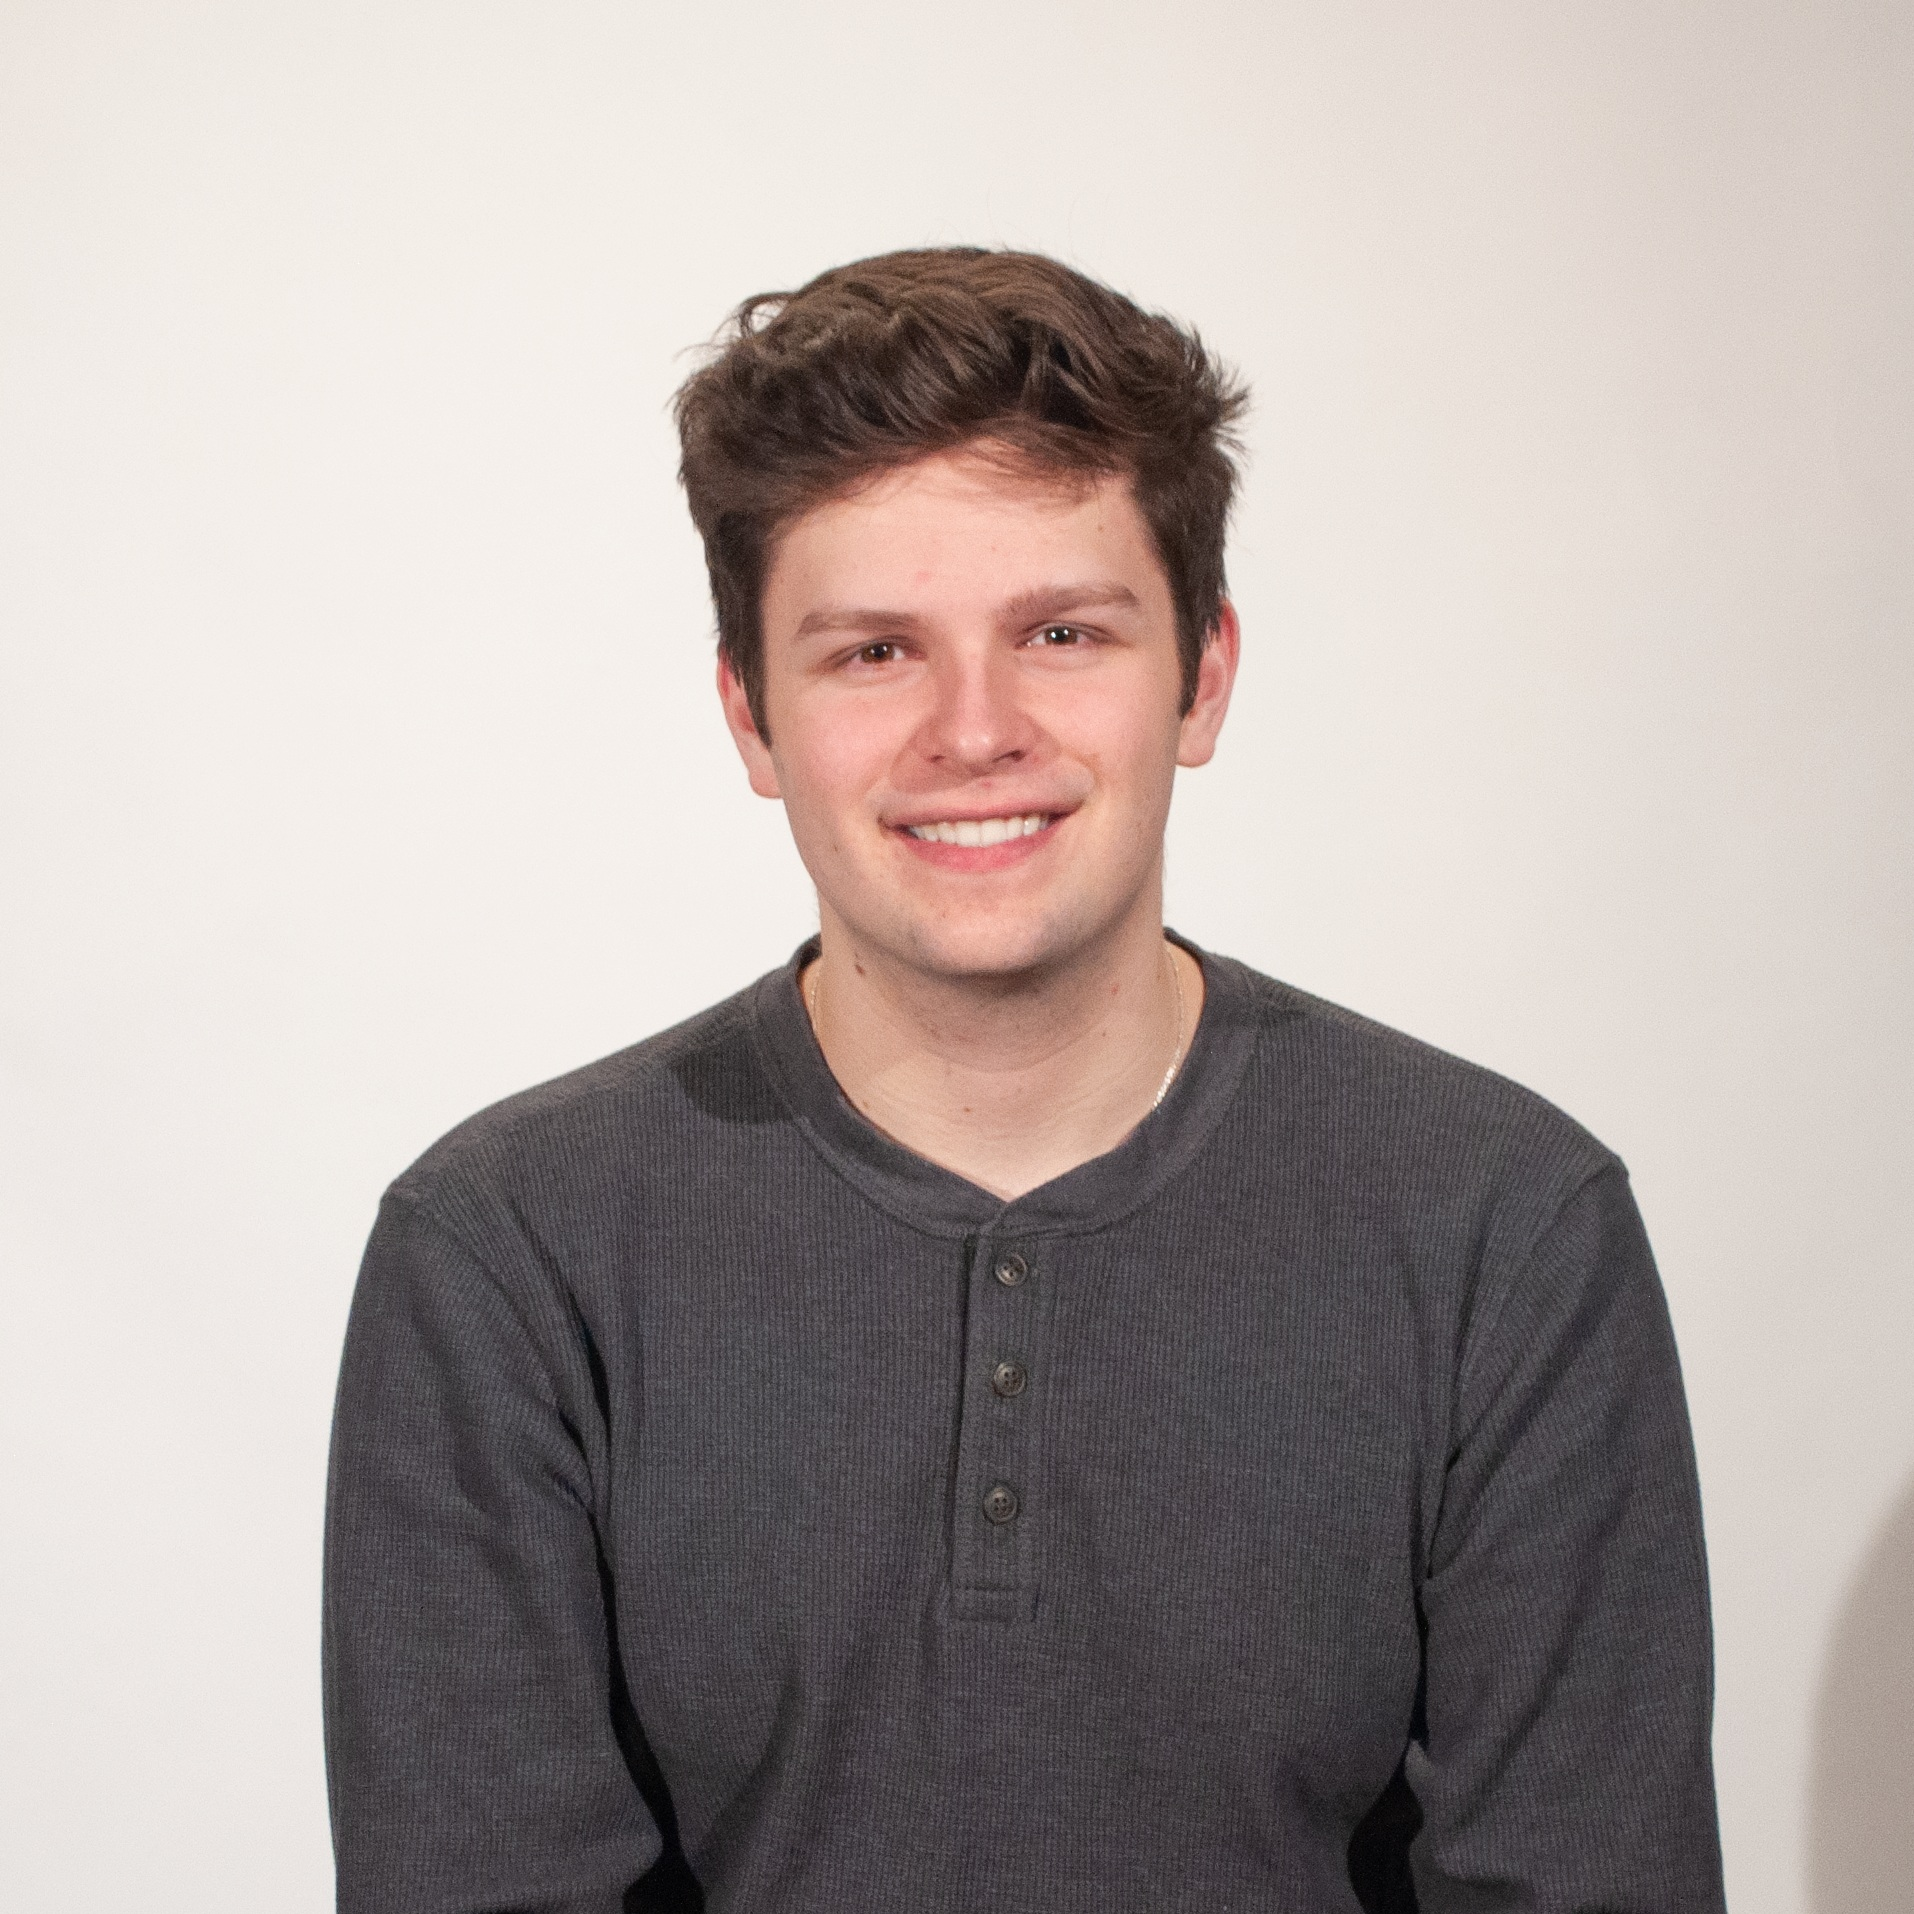 Hunter Elmore / Growth Coordinator   Hunter is a 3rd year Industrial Design student from Cincinnati, Ohio. He is a part of Design in Mind, because he wants to play a part in the education and inspiration of future designers and students.